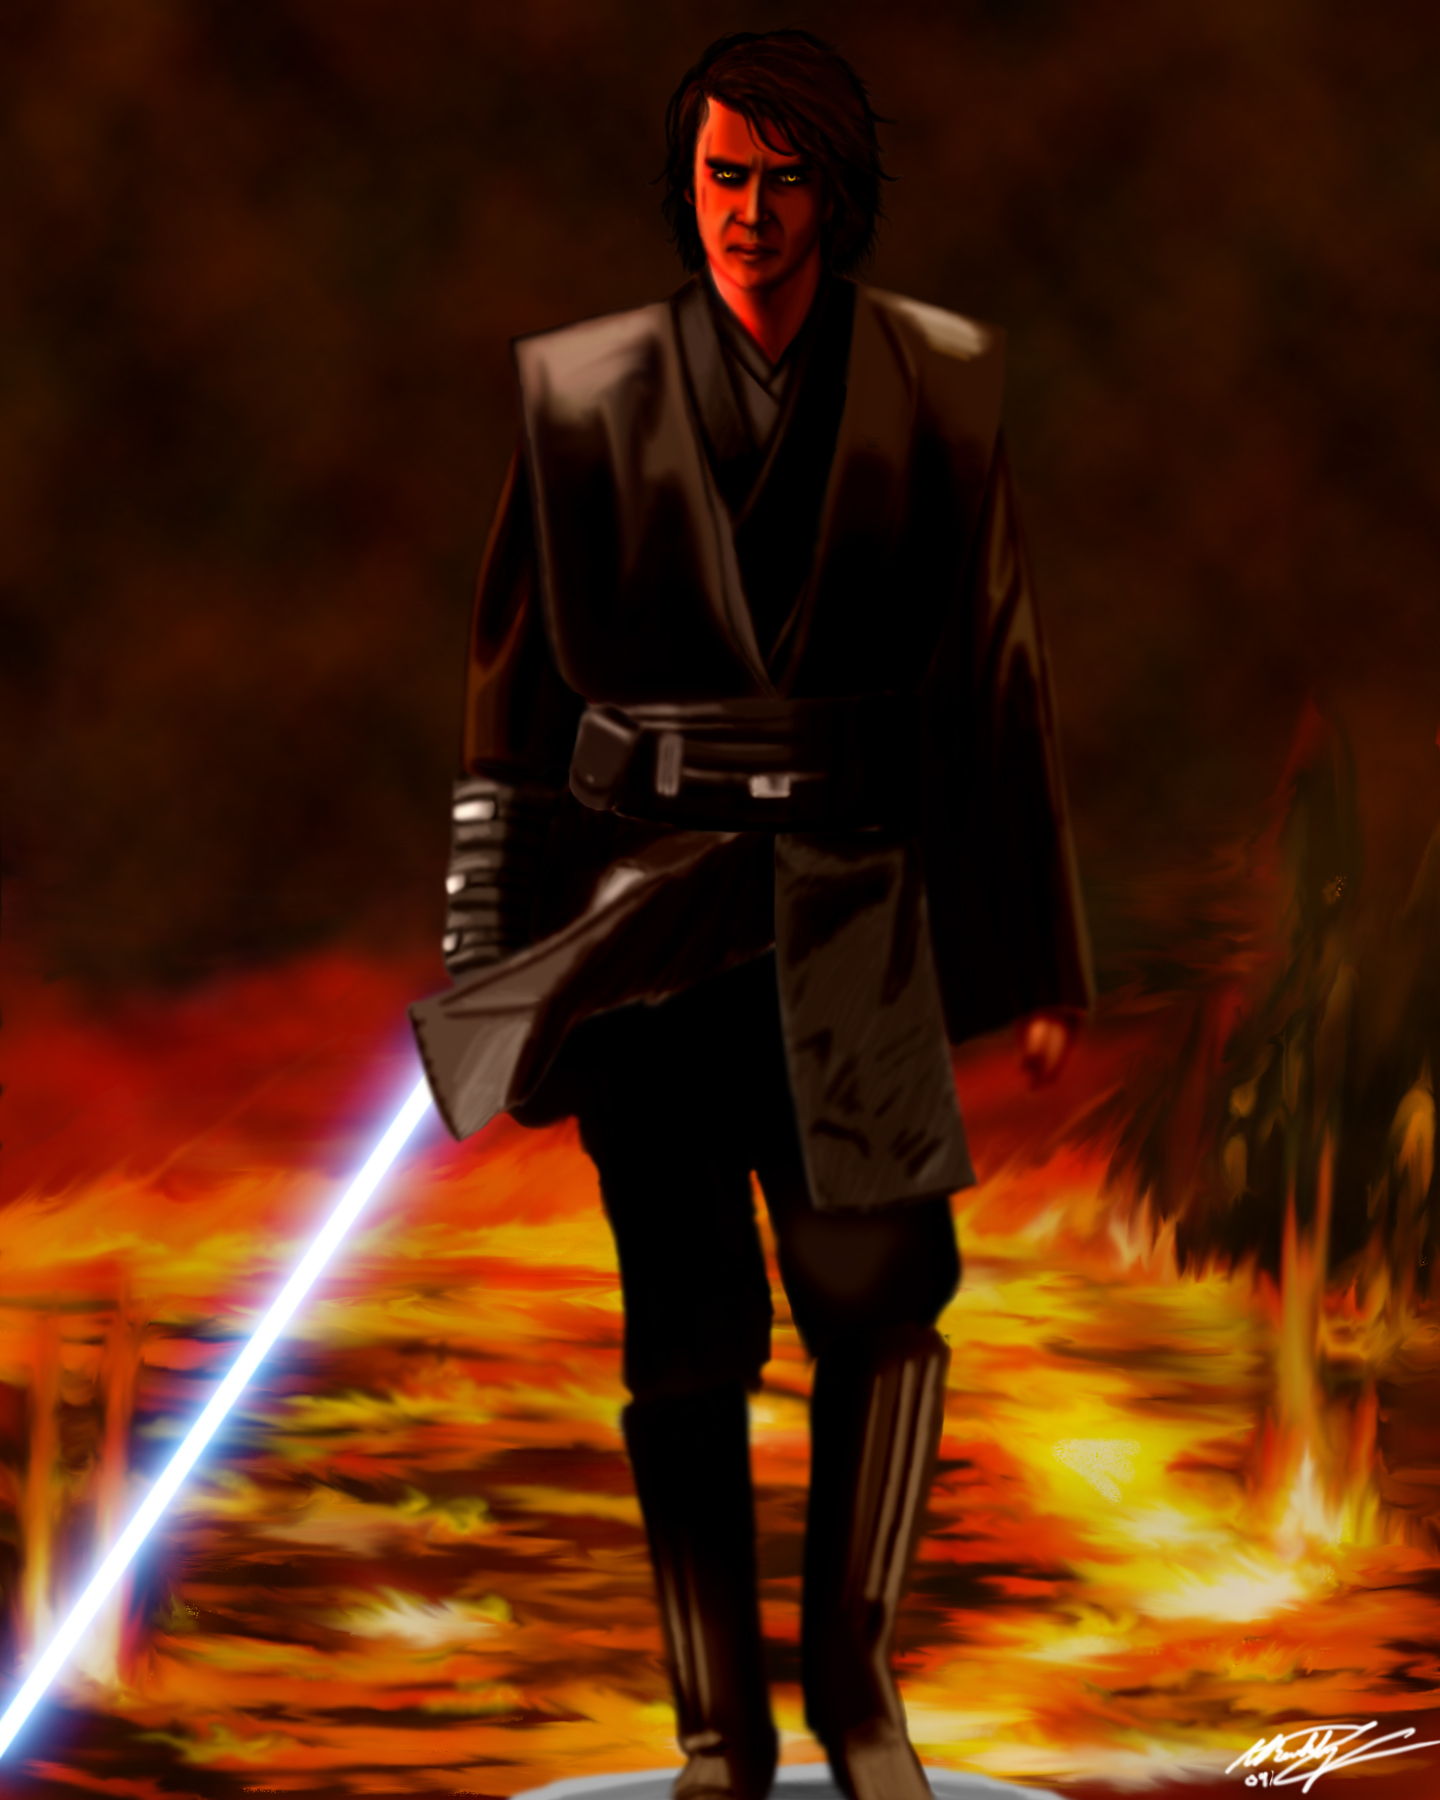 Anakin on Mustafar by BuckBuckBuckles on DeviantArt